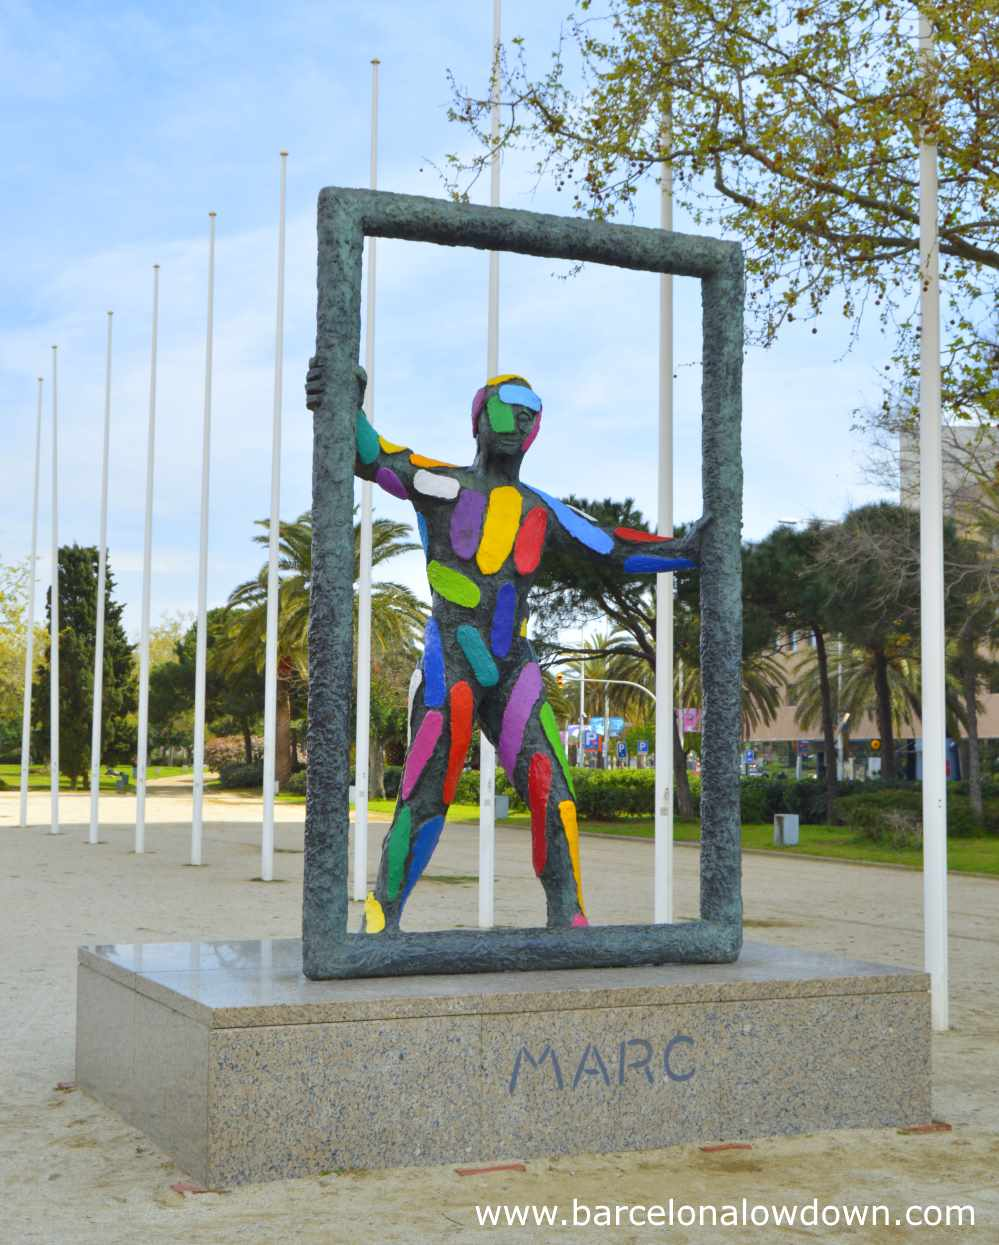 Statue of Marc in the 1992 Olympic Village, Barcelona